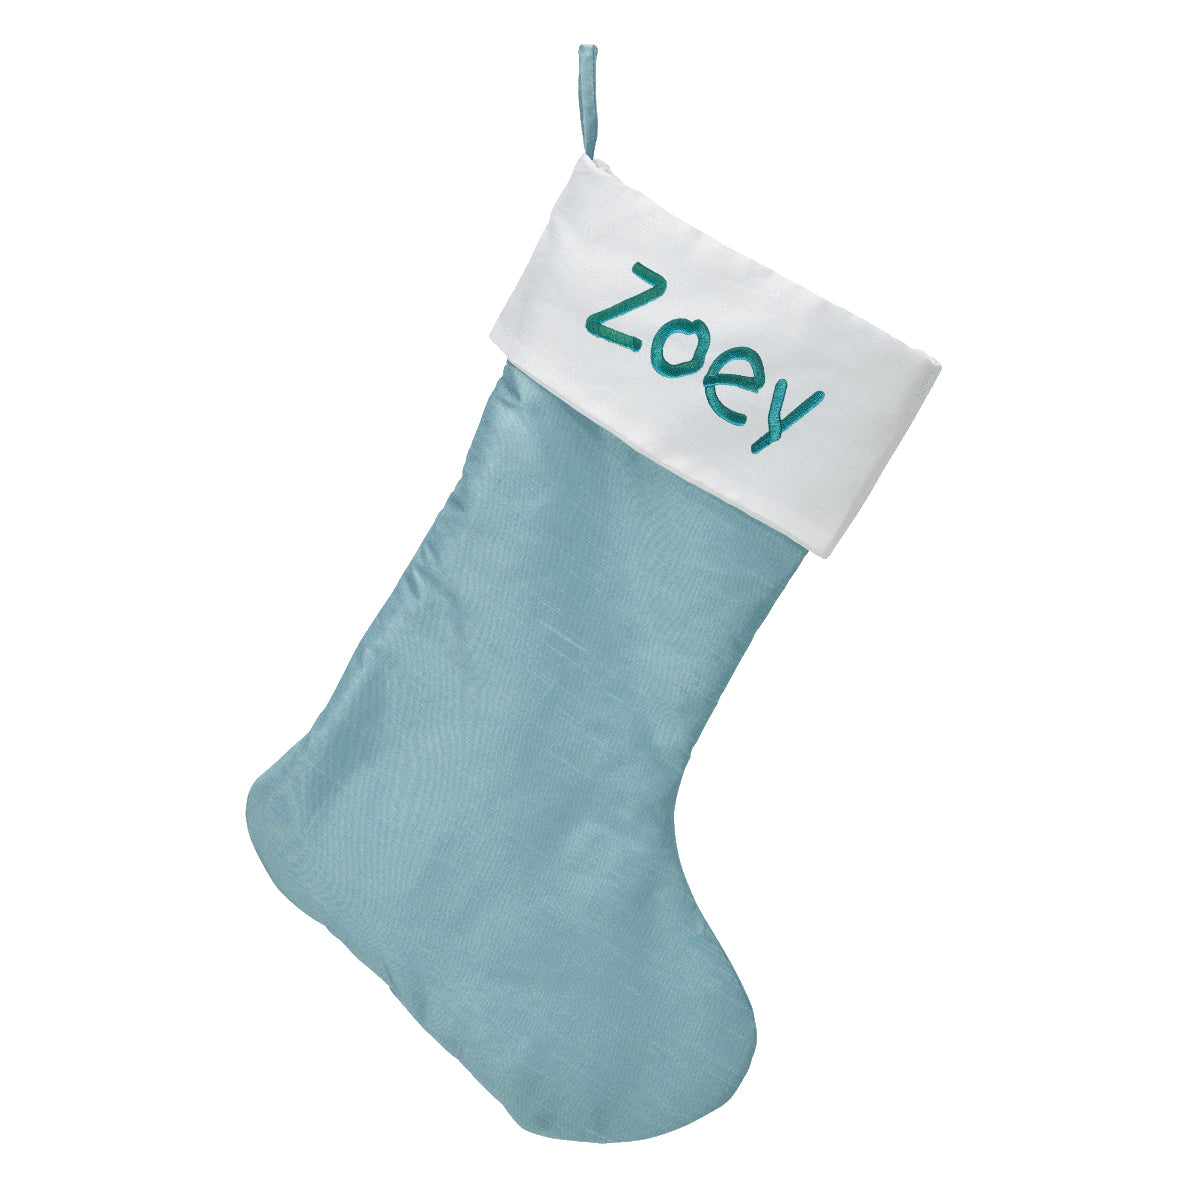 Personalized Christmas Stockings - Ice Blue